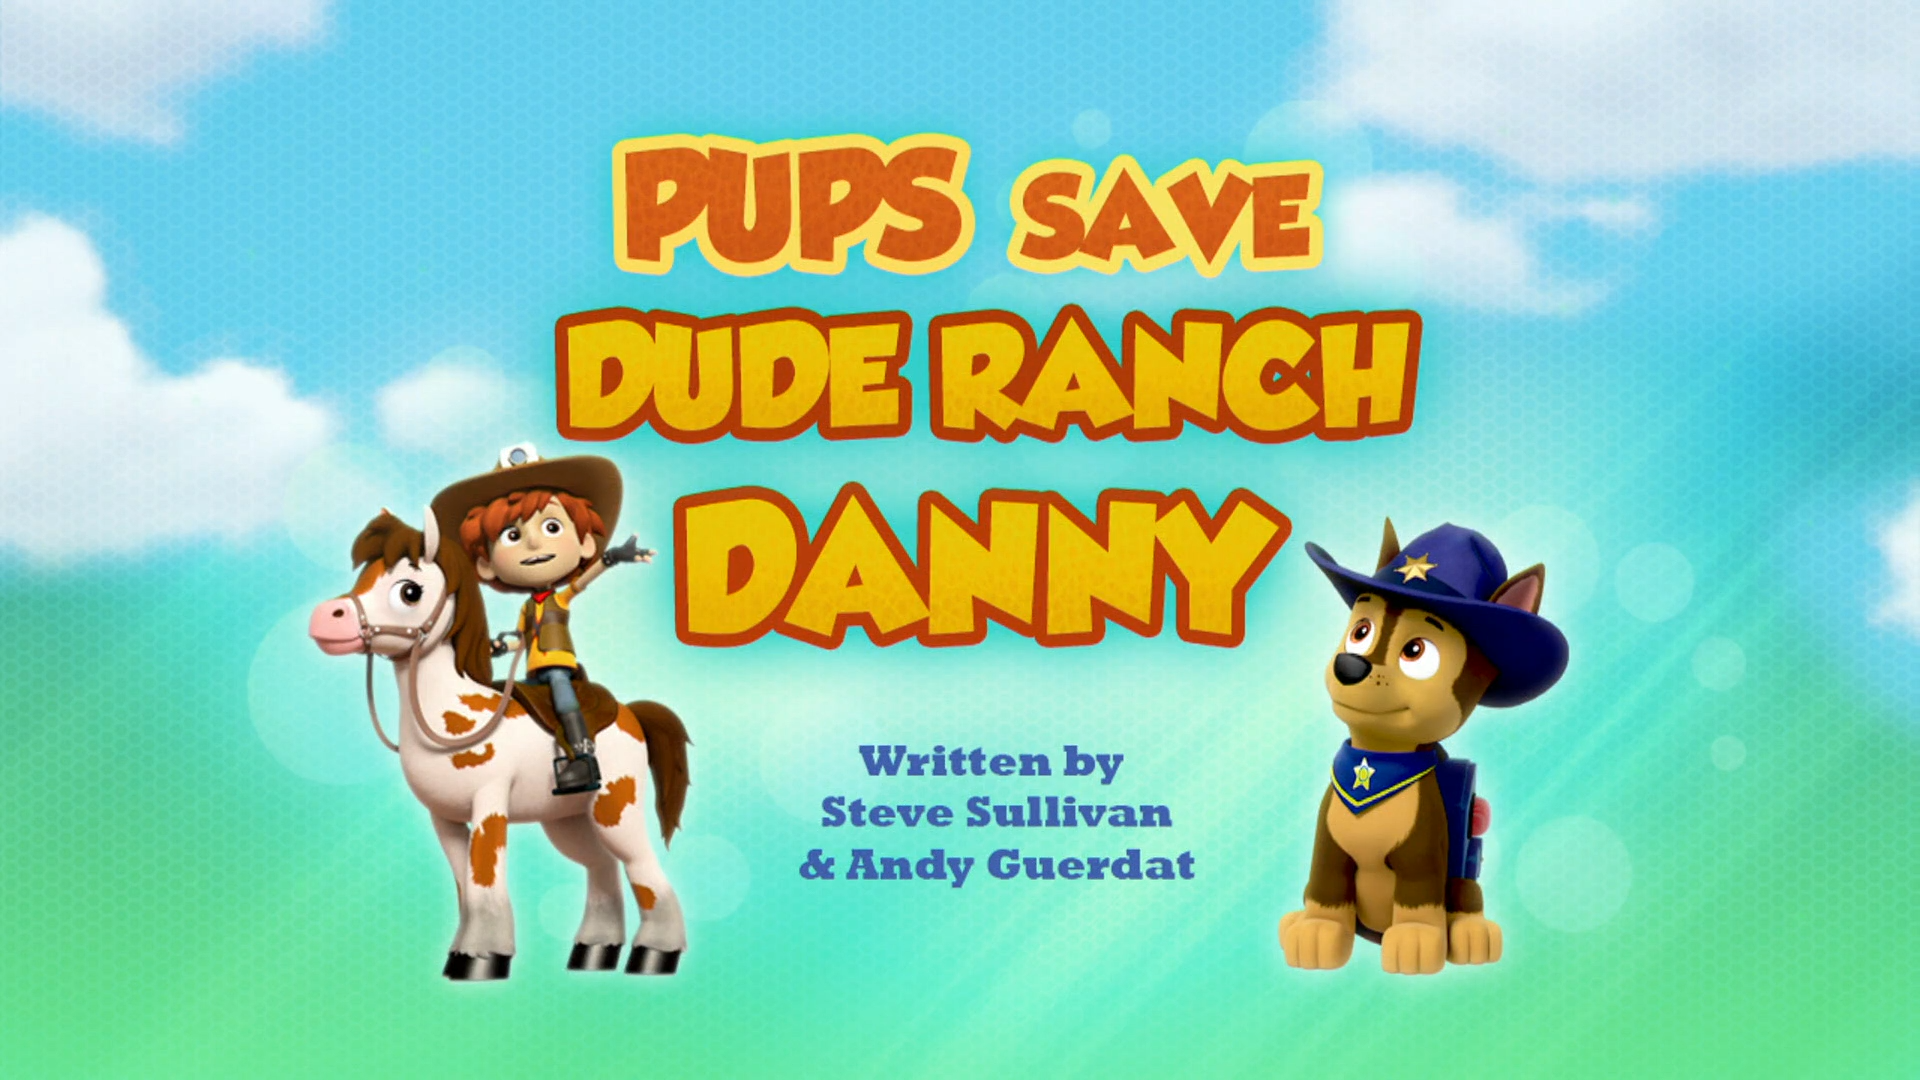 Pups Save Dude Ranch Danny